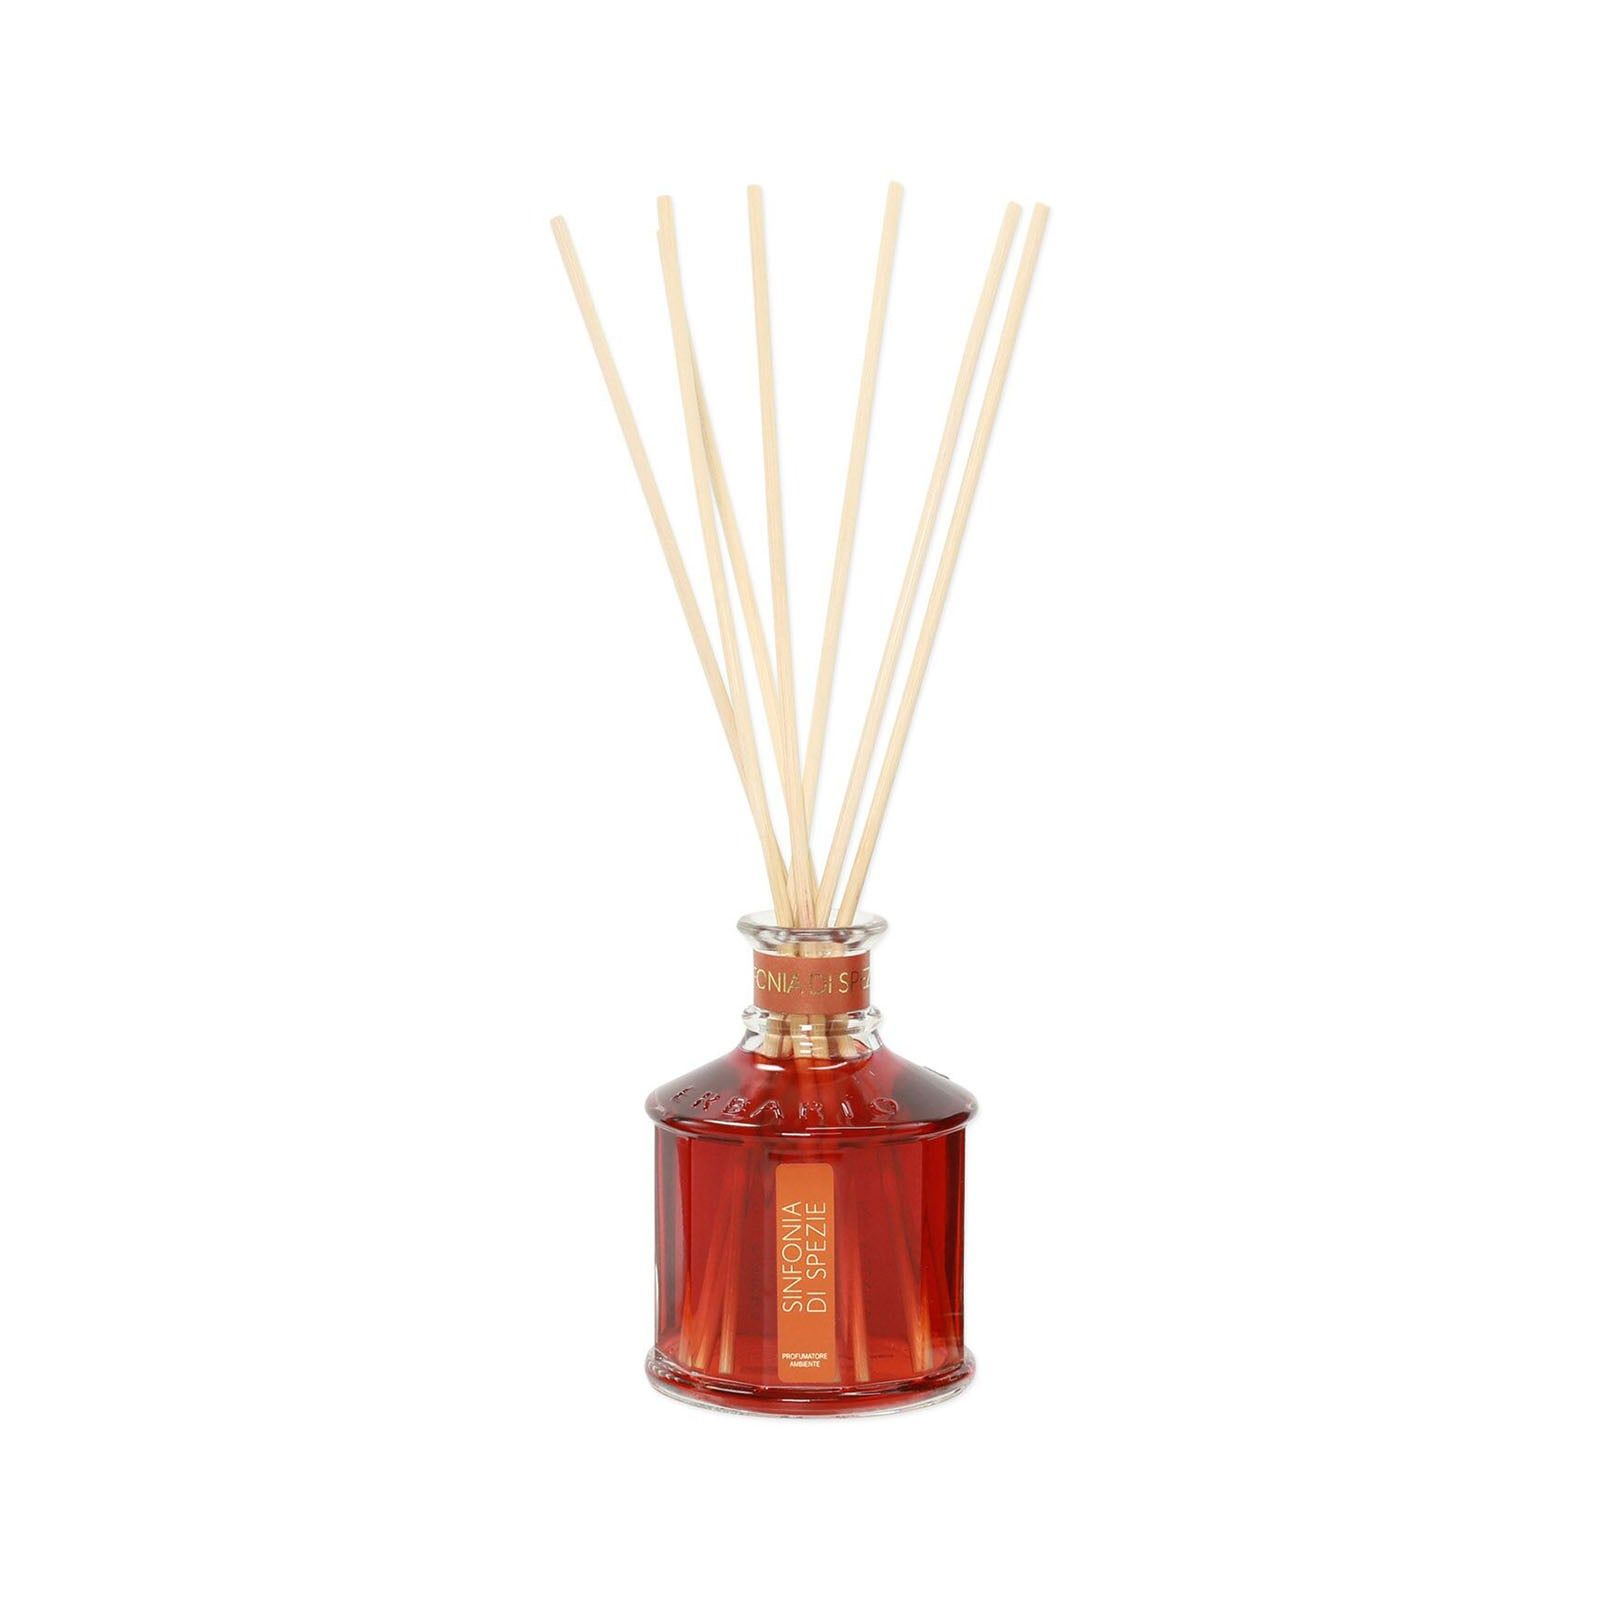 Sinfonia di Spezie - Symphony of Spices Luxury Home Fragrance Diffuser 100mL - Wilson Lee